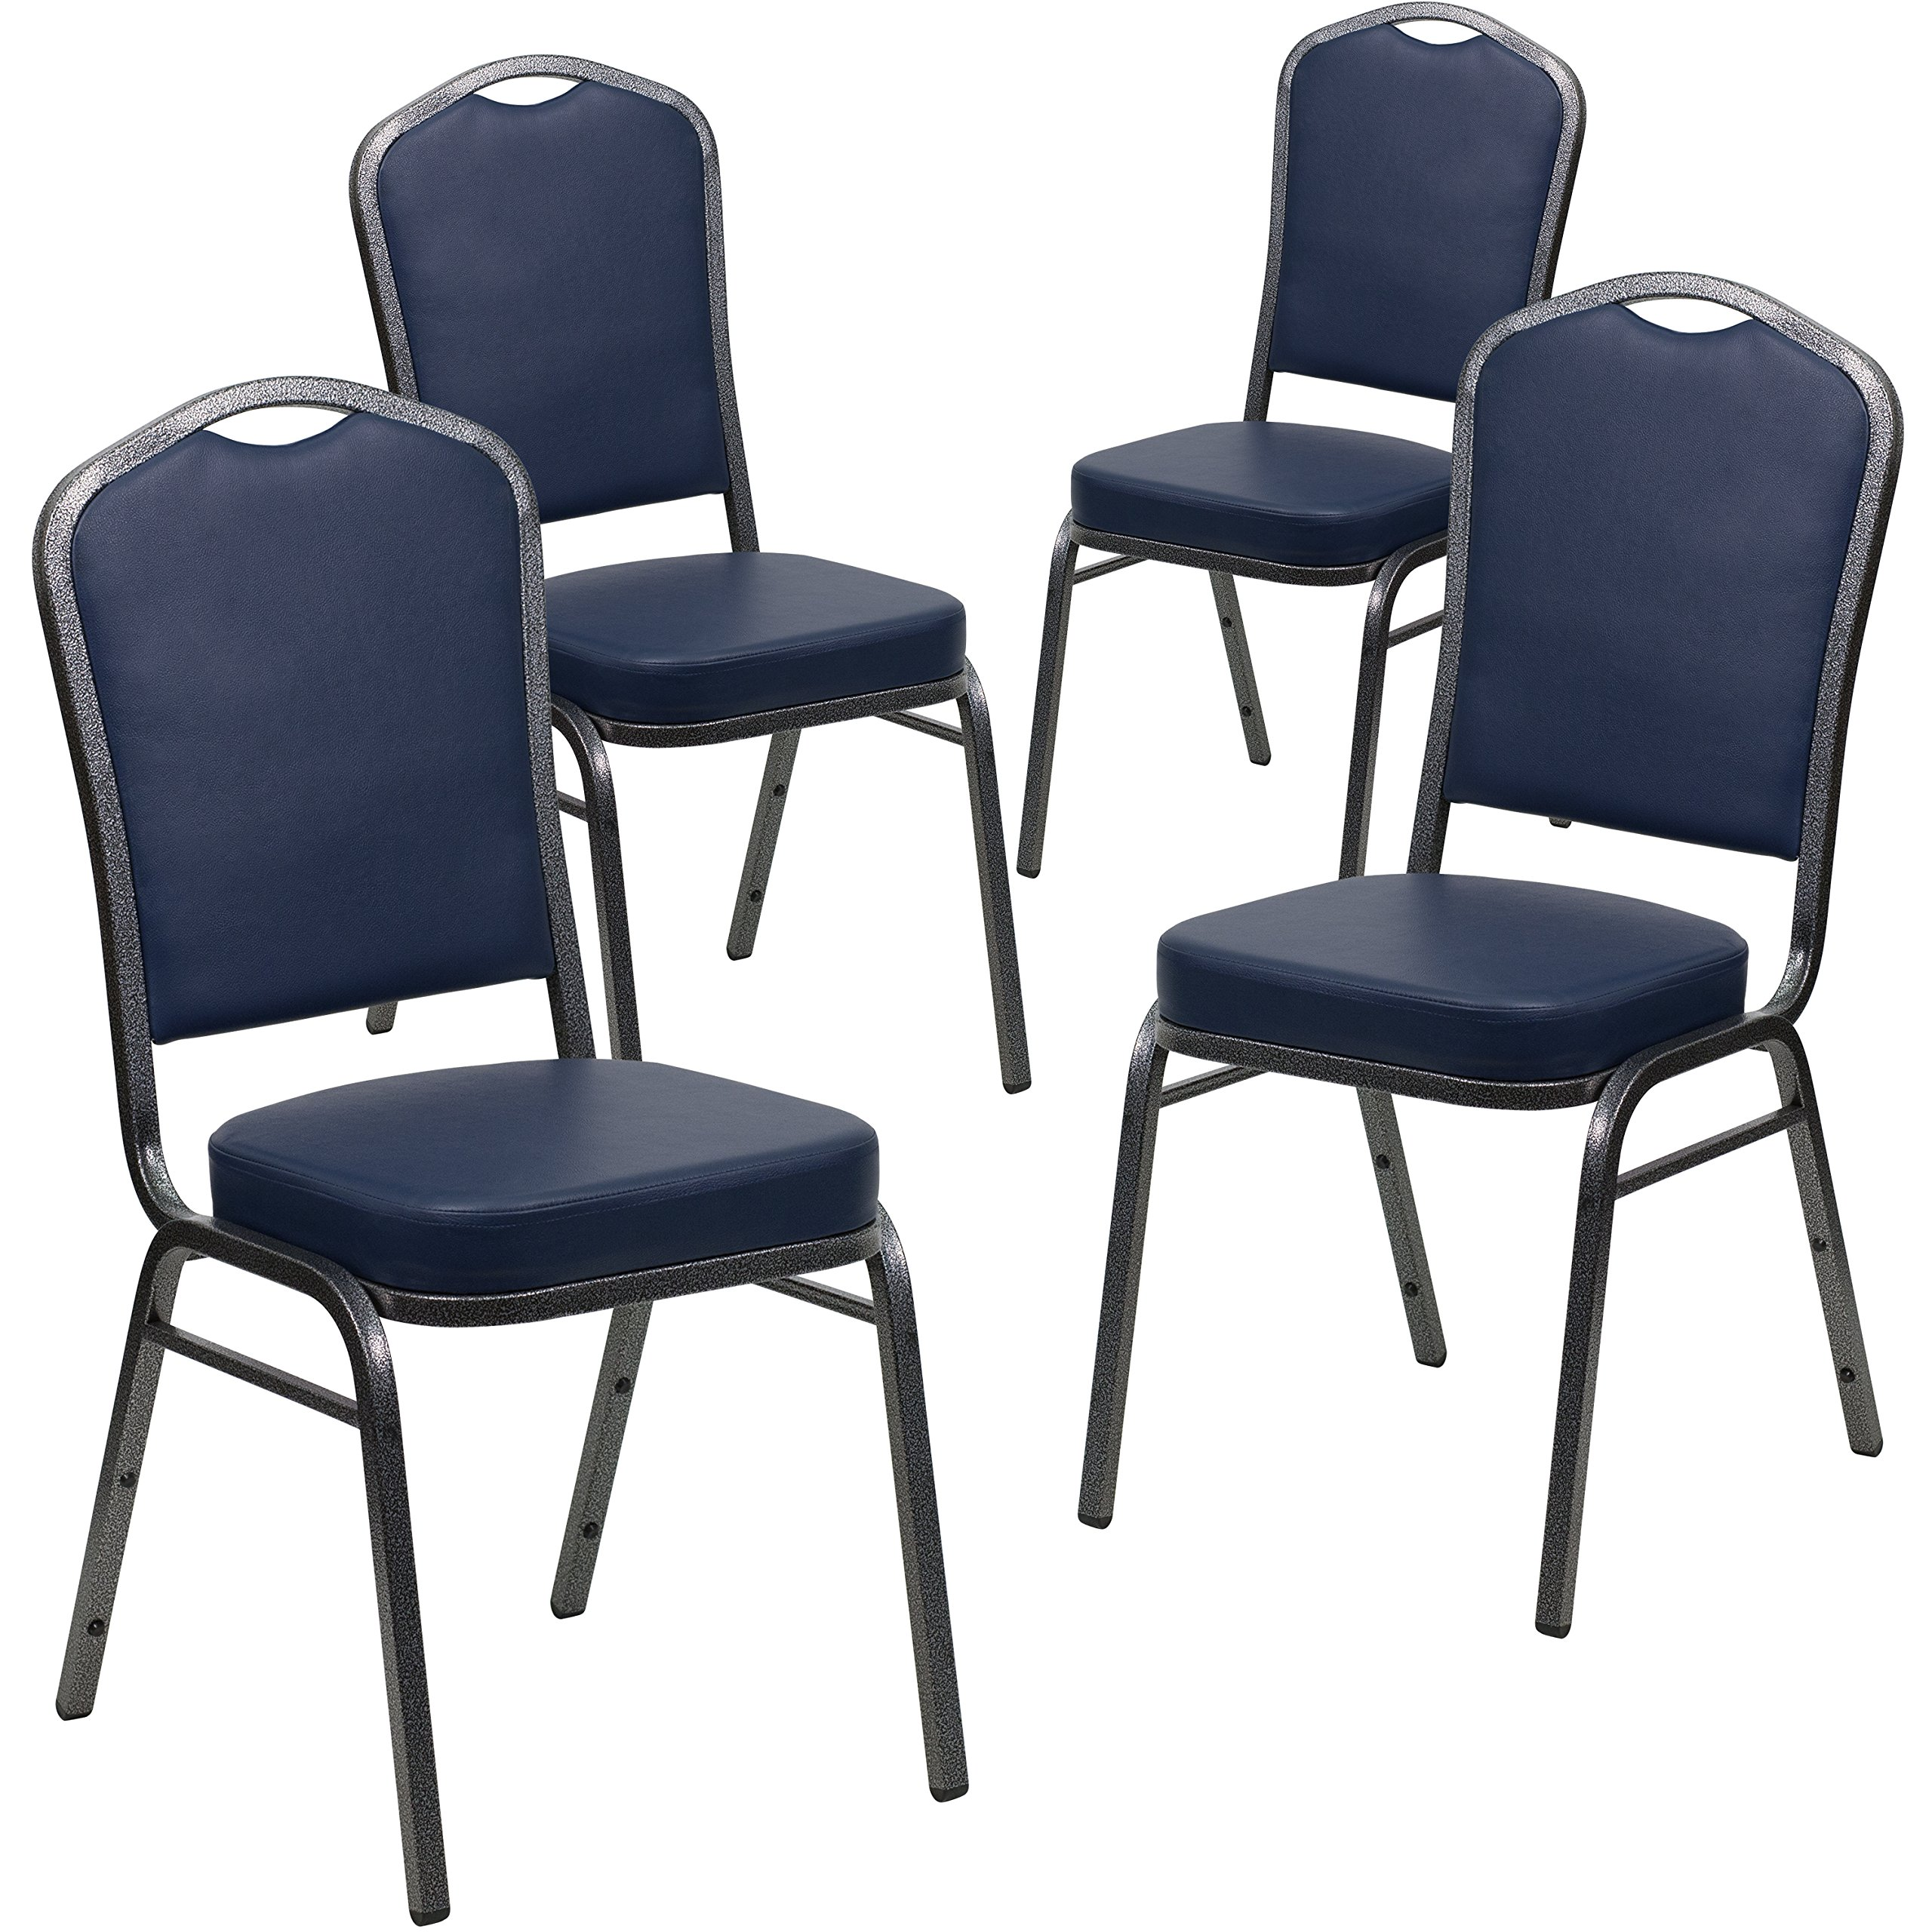 Flash Furniture 4 Pk. HERCULES Series Crown Back Stacking Banquet Chair in Navy Vinyl - Silver Vein Frame by Flash Furniture